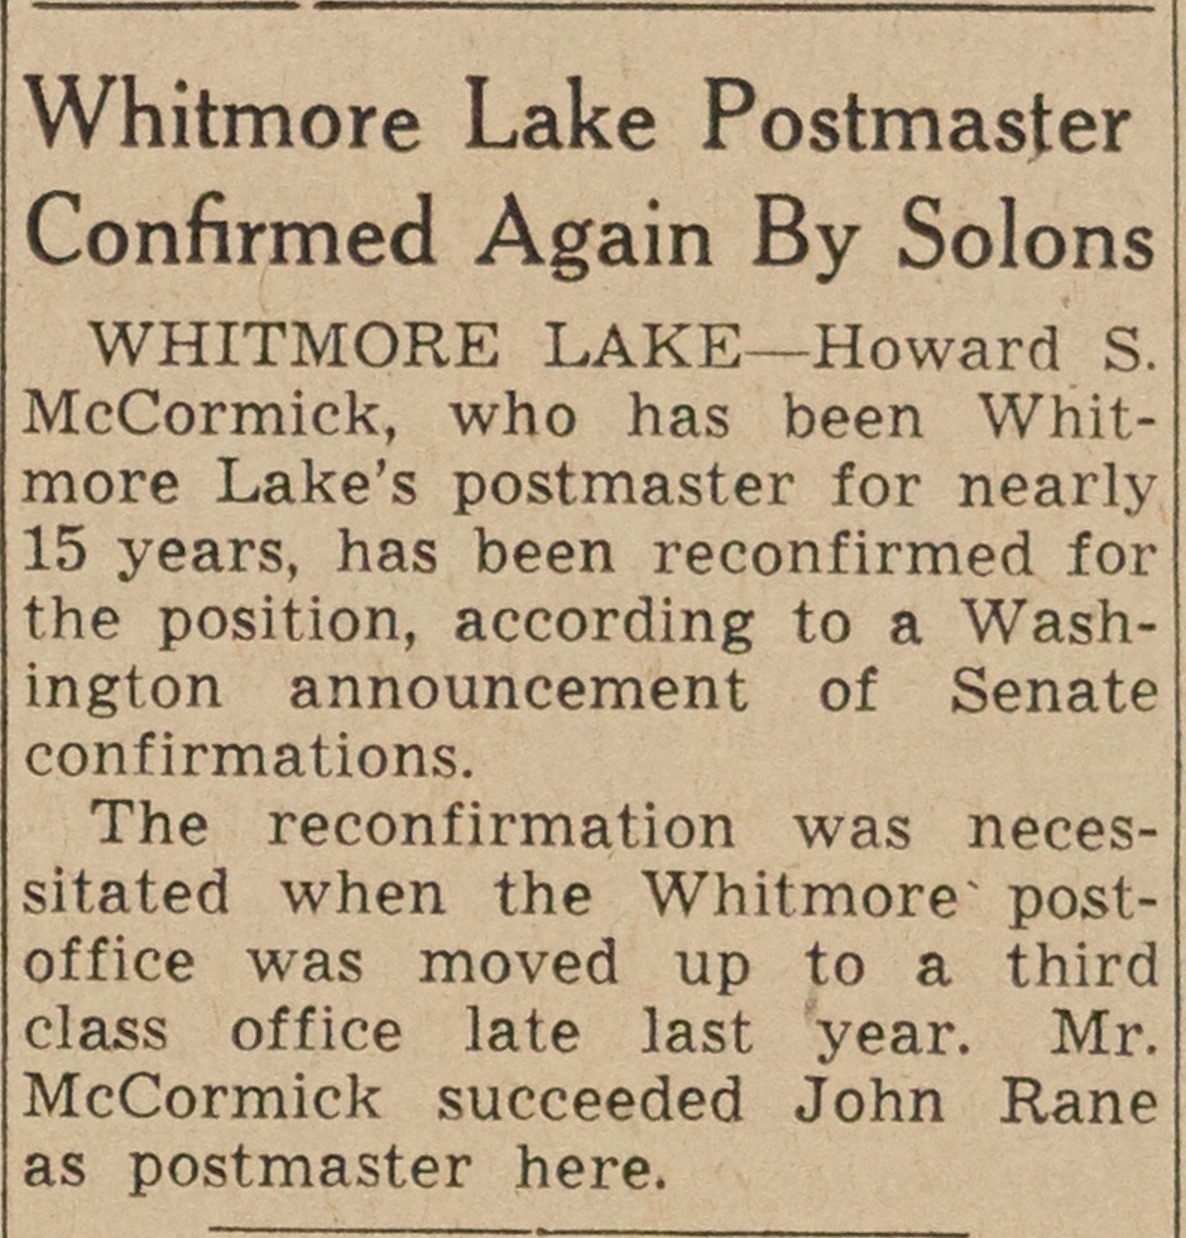 Whitmore Lake Postmaster Confirmed Again By Solons image